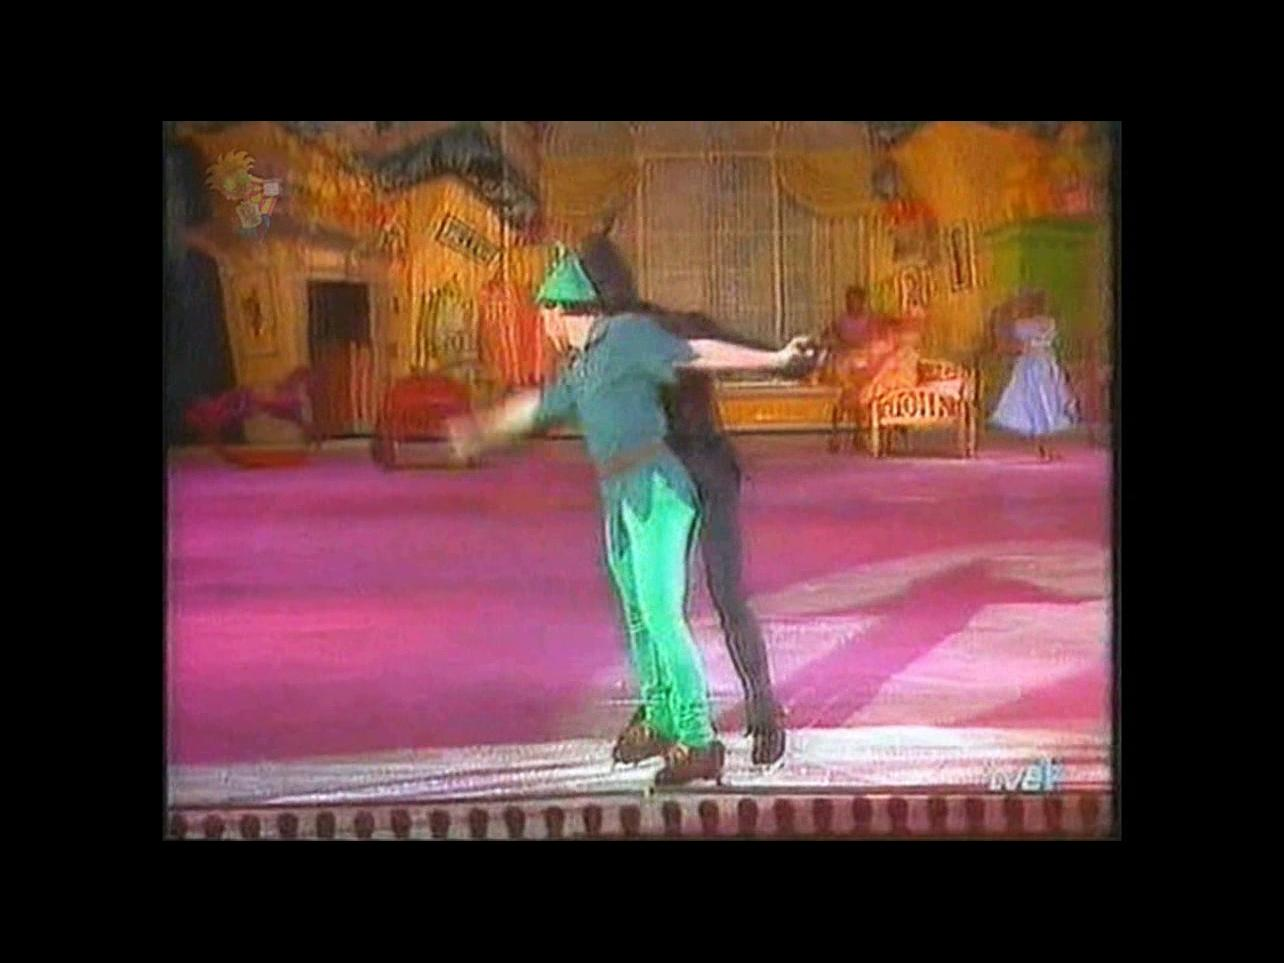 Palau Sant Jordi - Walt Disney Peter Pan On Ice (1993)